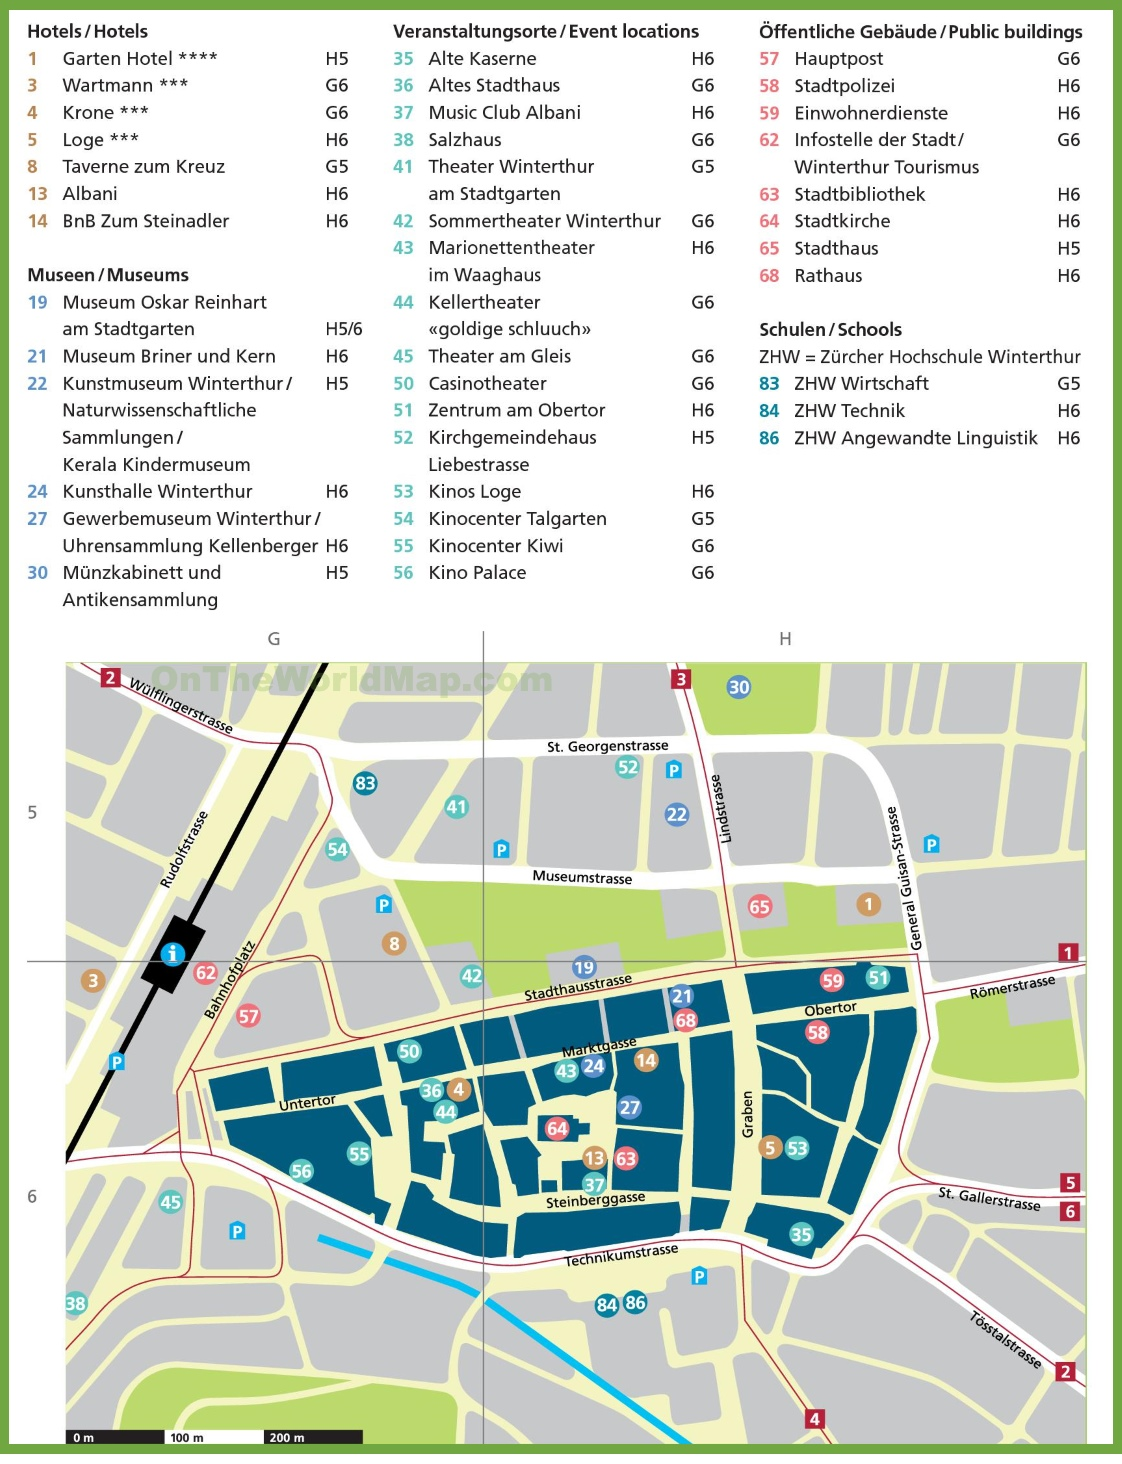 Winterthur hotels and sightseeings map